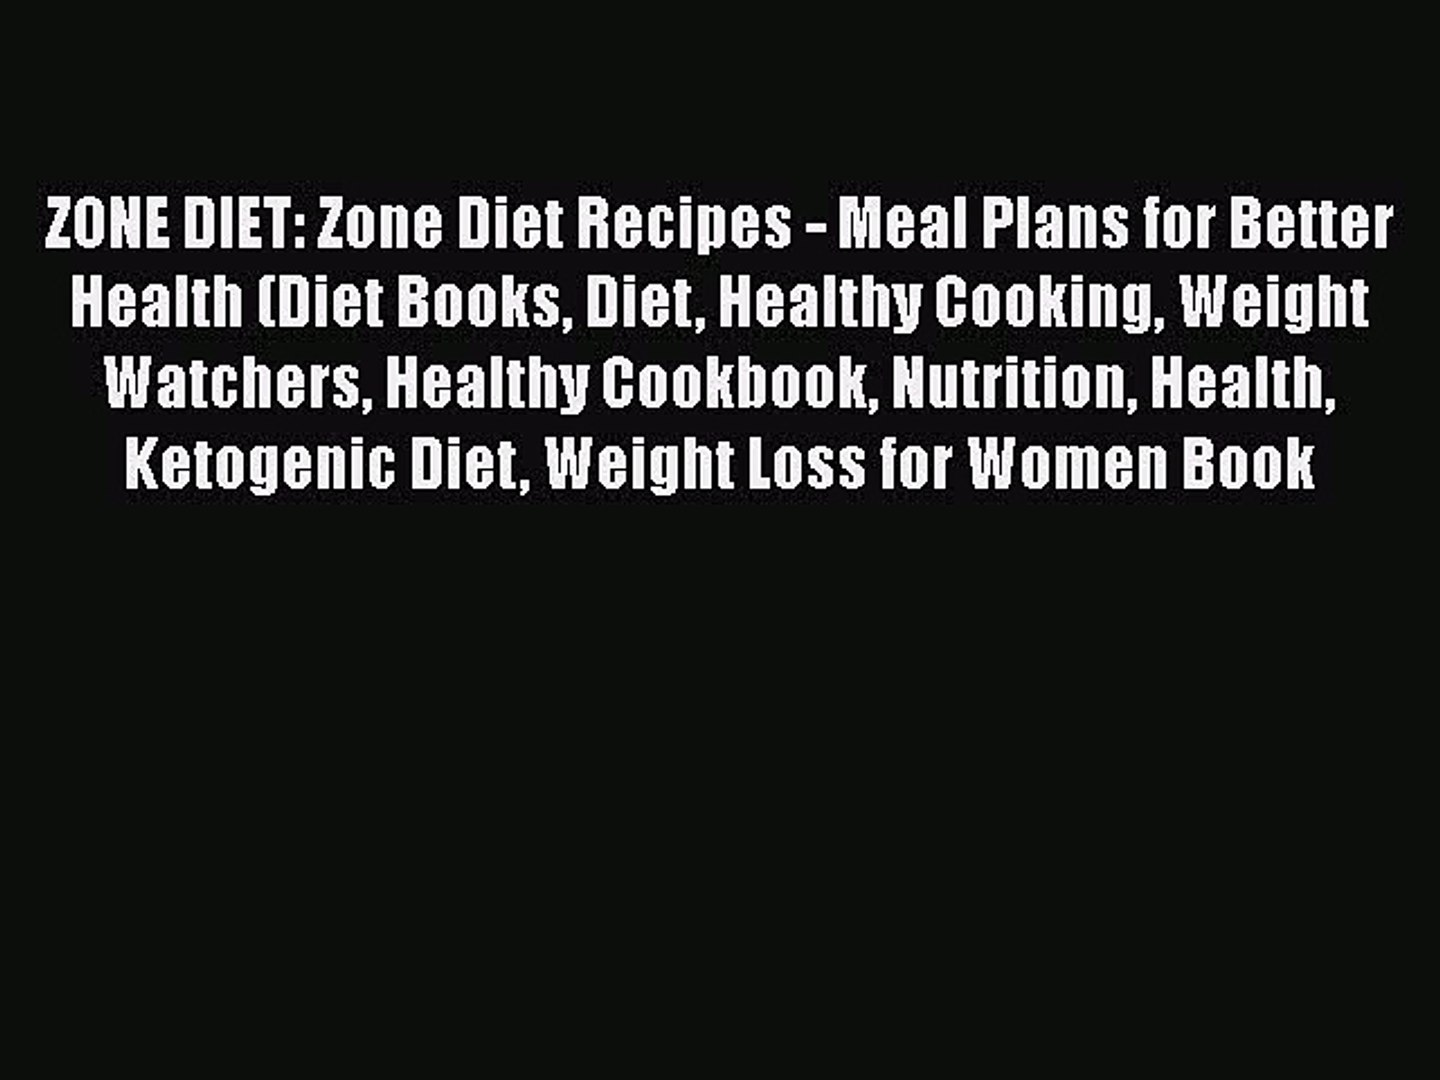 PDF ZONE DIET: Zone Diet Recipes - Meal Plans for Better Health (Diet Books Diet Healthy Cooking